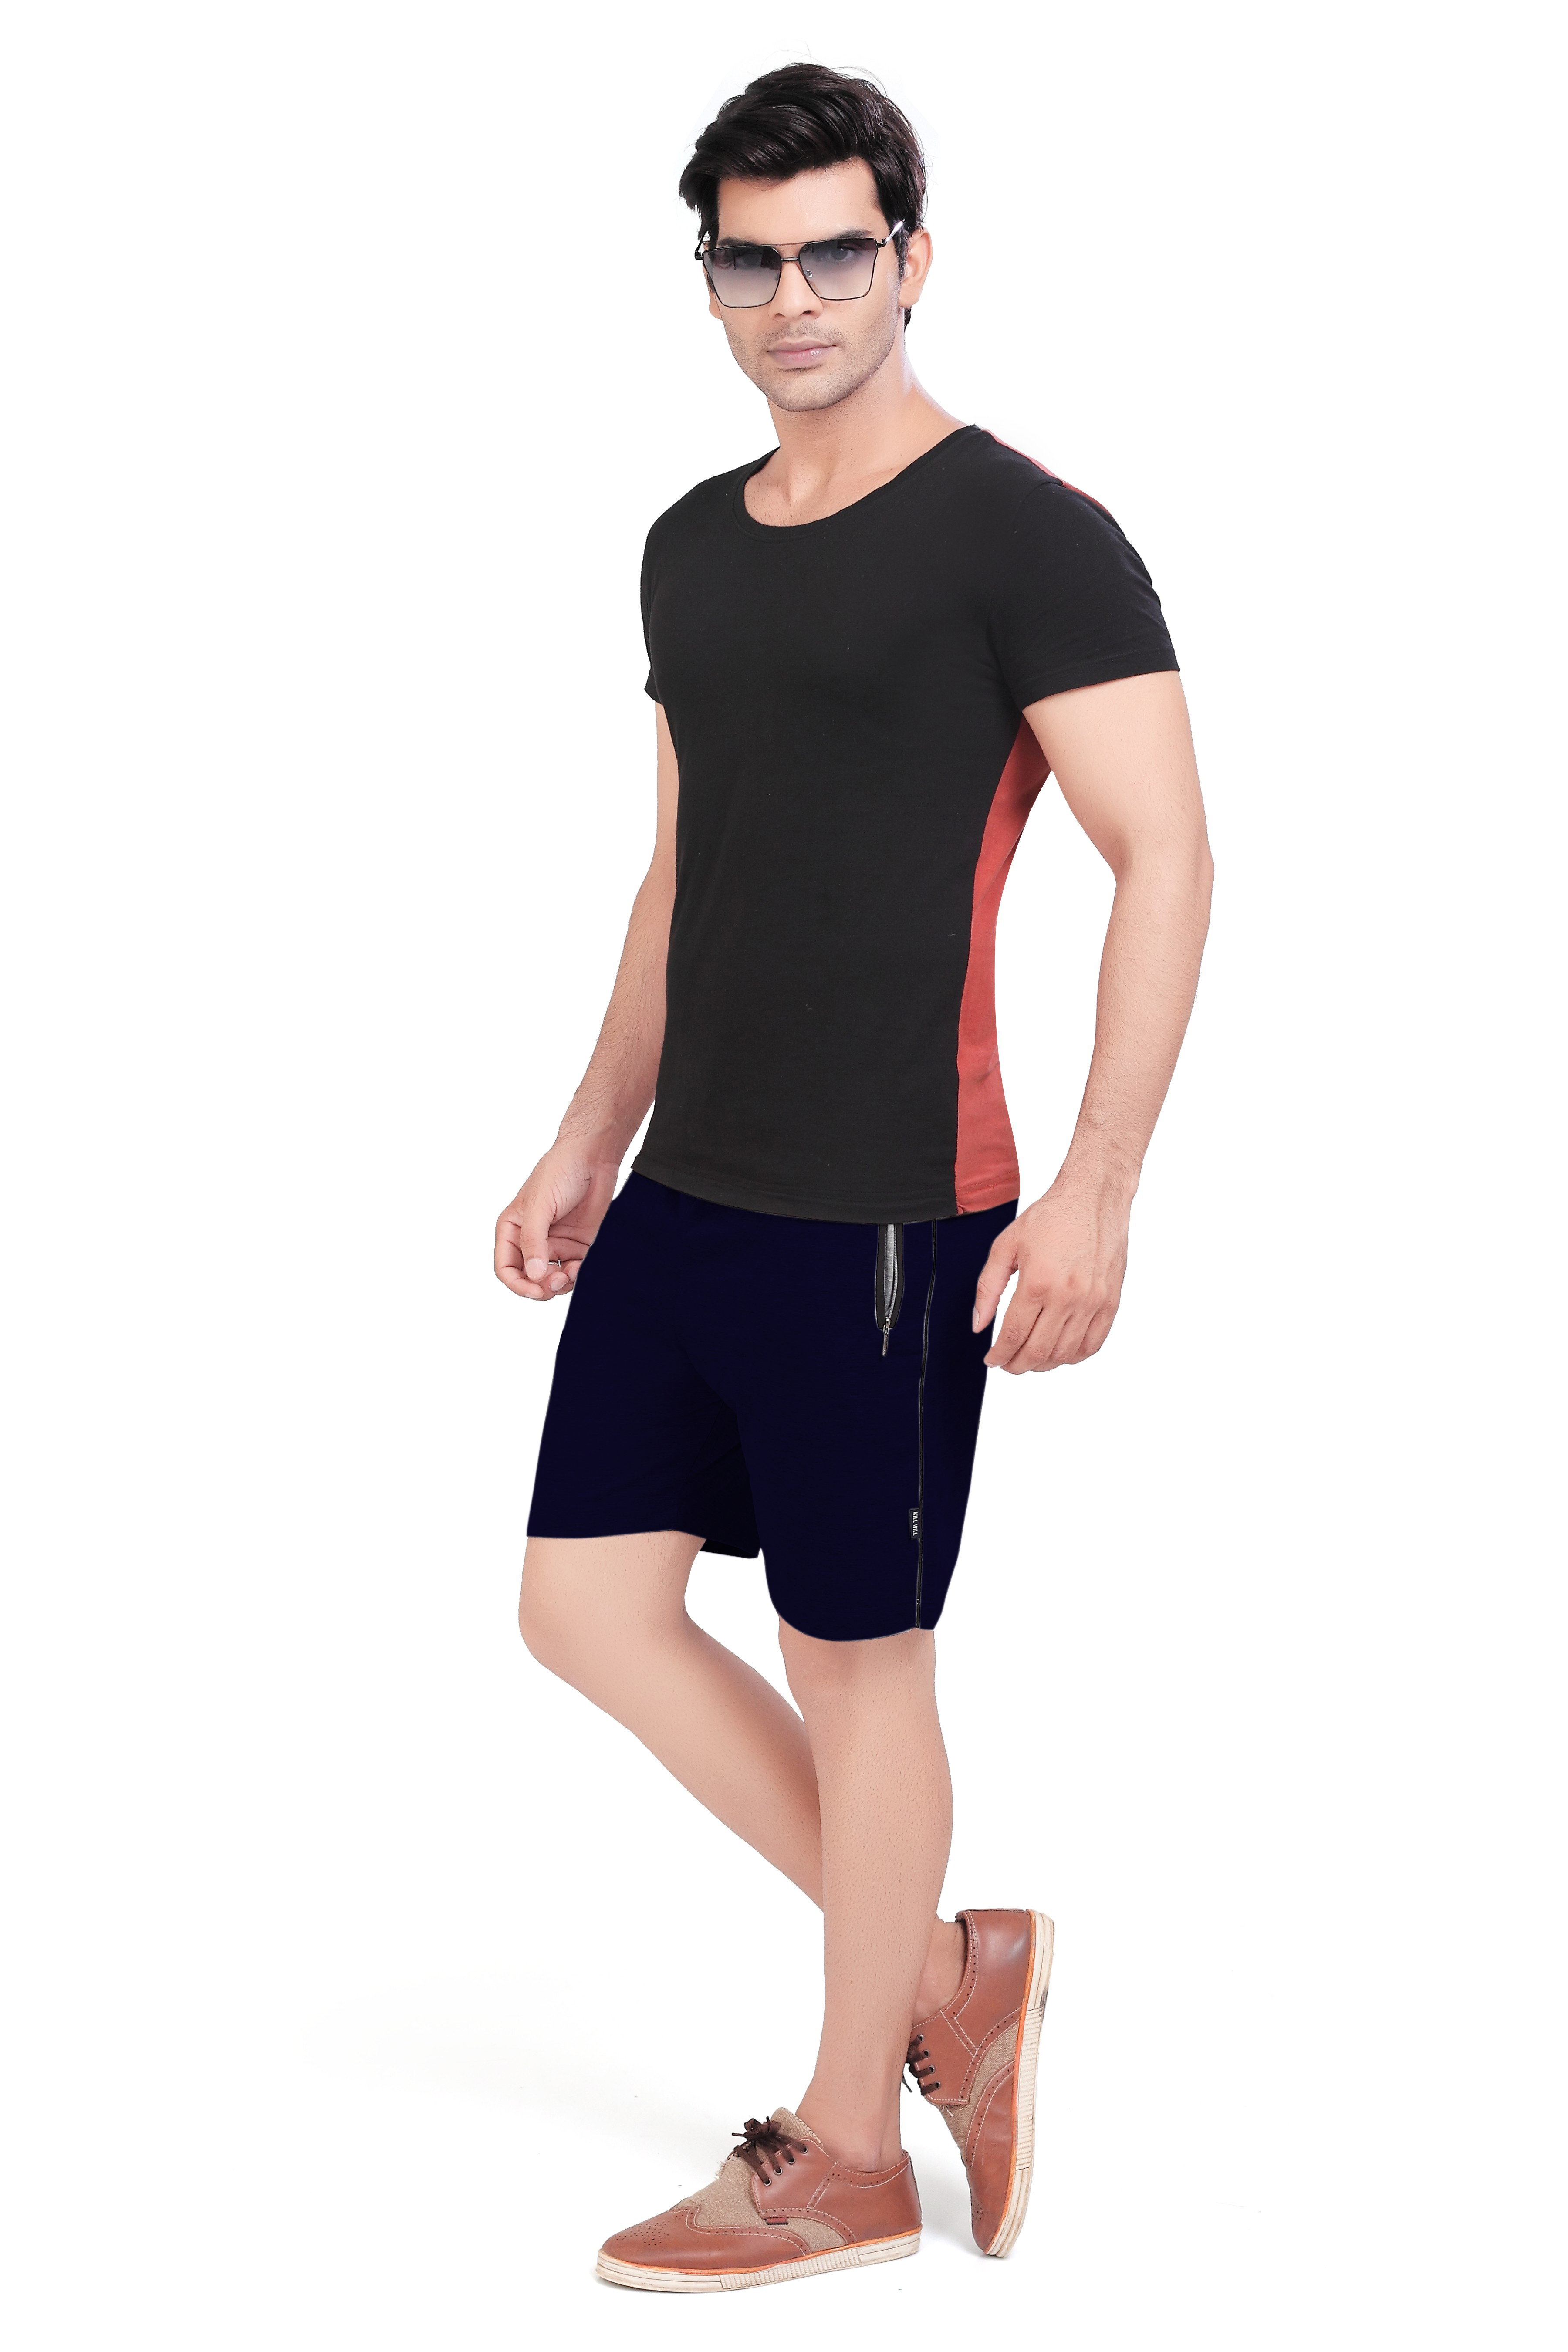 Cotton Mid Rise Shorts With Insert Pocket For Men (4XL, Navy Blue)